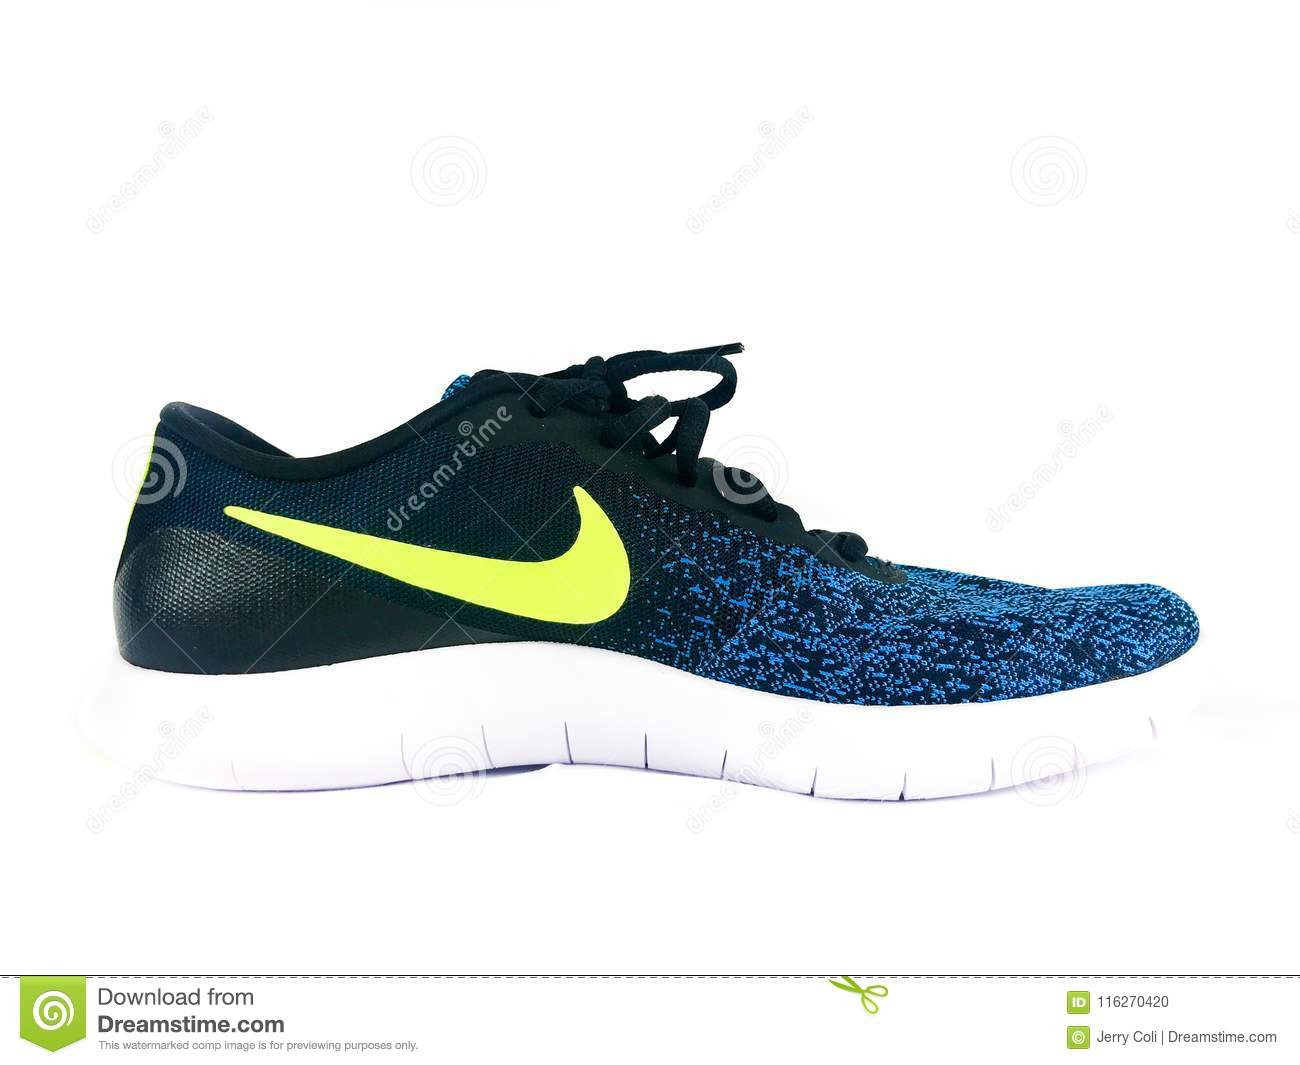 info for 46633 11a5d nike-sneakers-sale-shoe-store-nike-sneakers -sale-shoe-store-white-backdrop-116270420.jpg